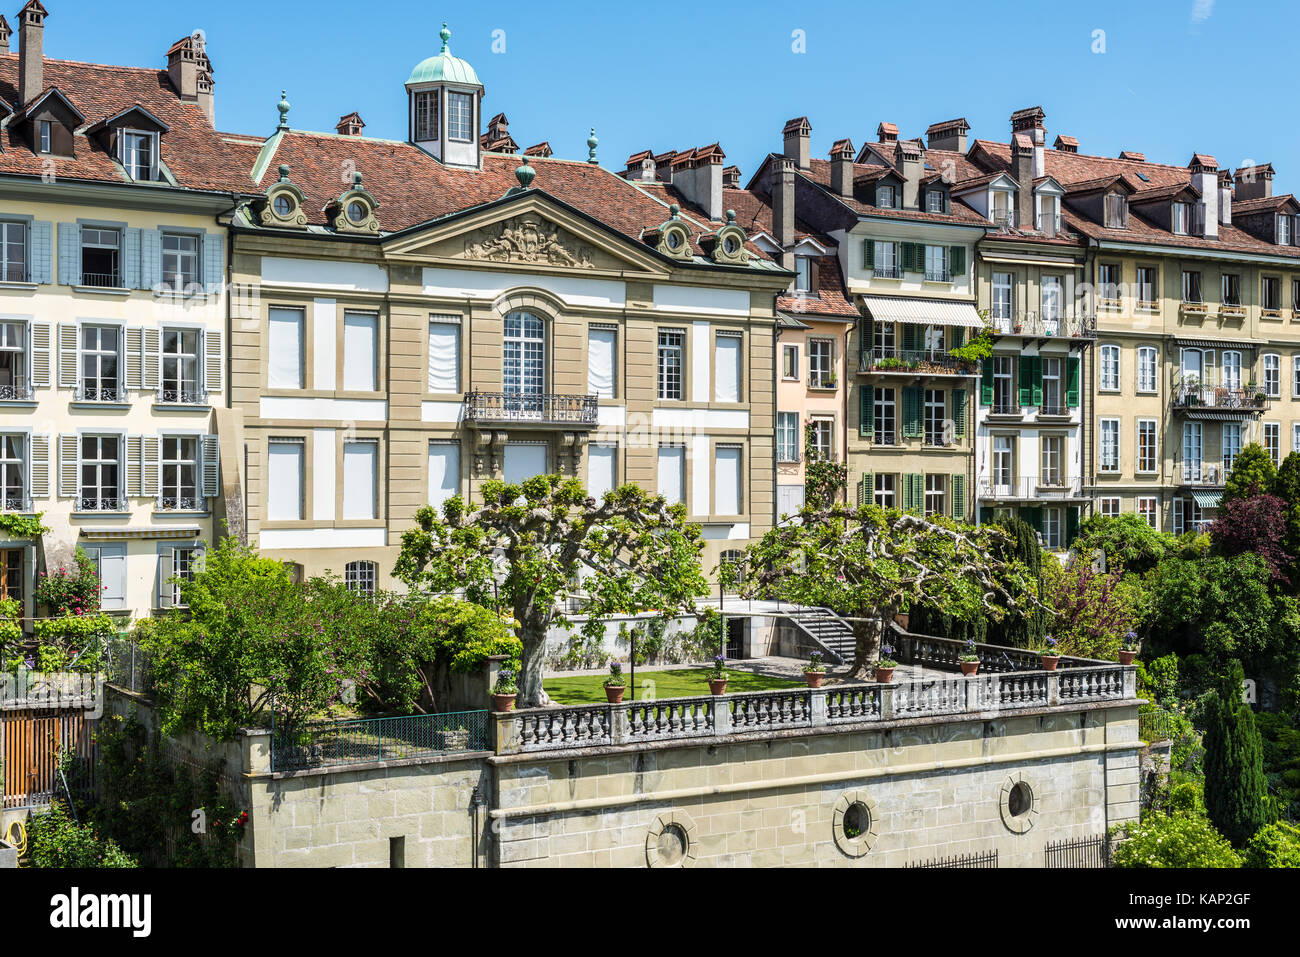 Bern, Switzerland - May 26, 2016: Upscale residential area with gardens near the Bern Cathedral and Aare River. Stock Photo